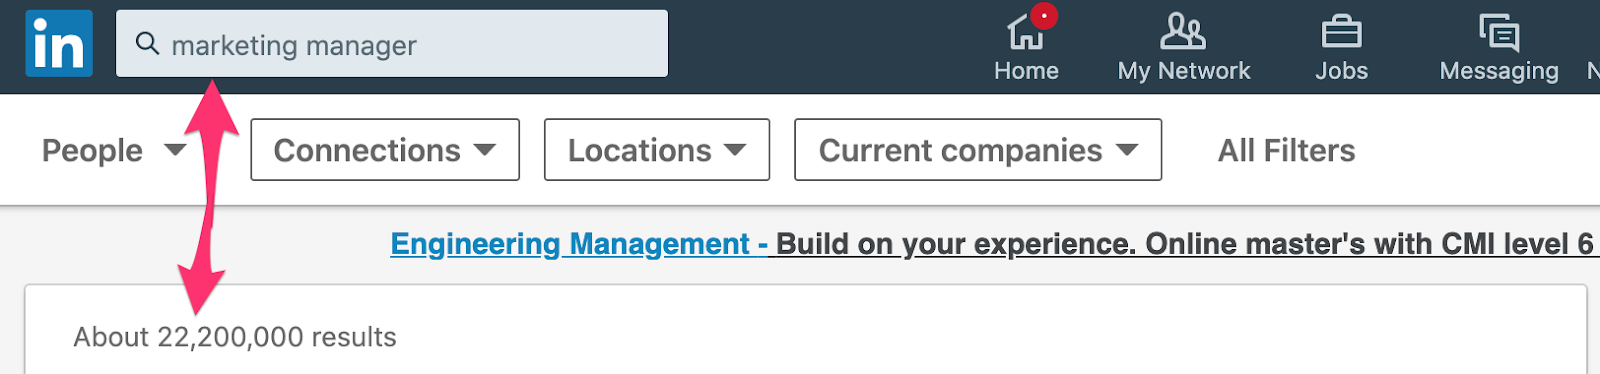 LinkedIn search features.